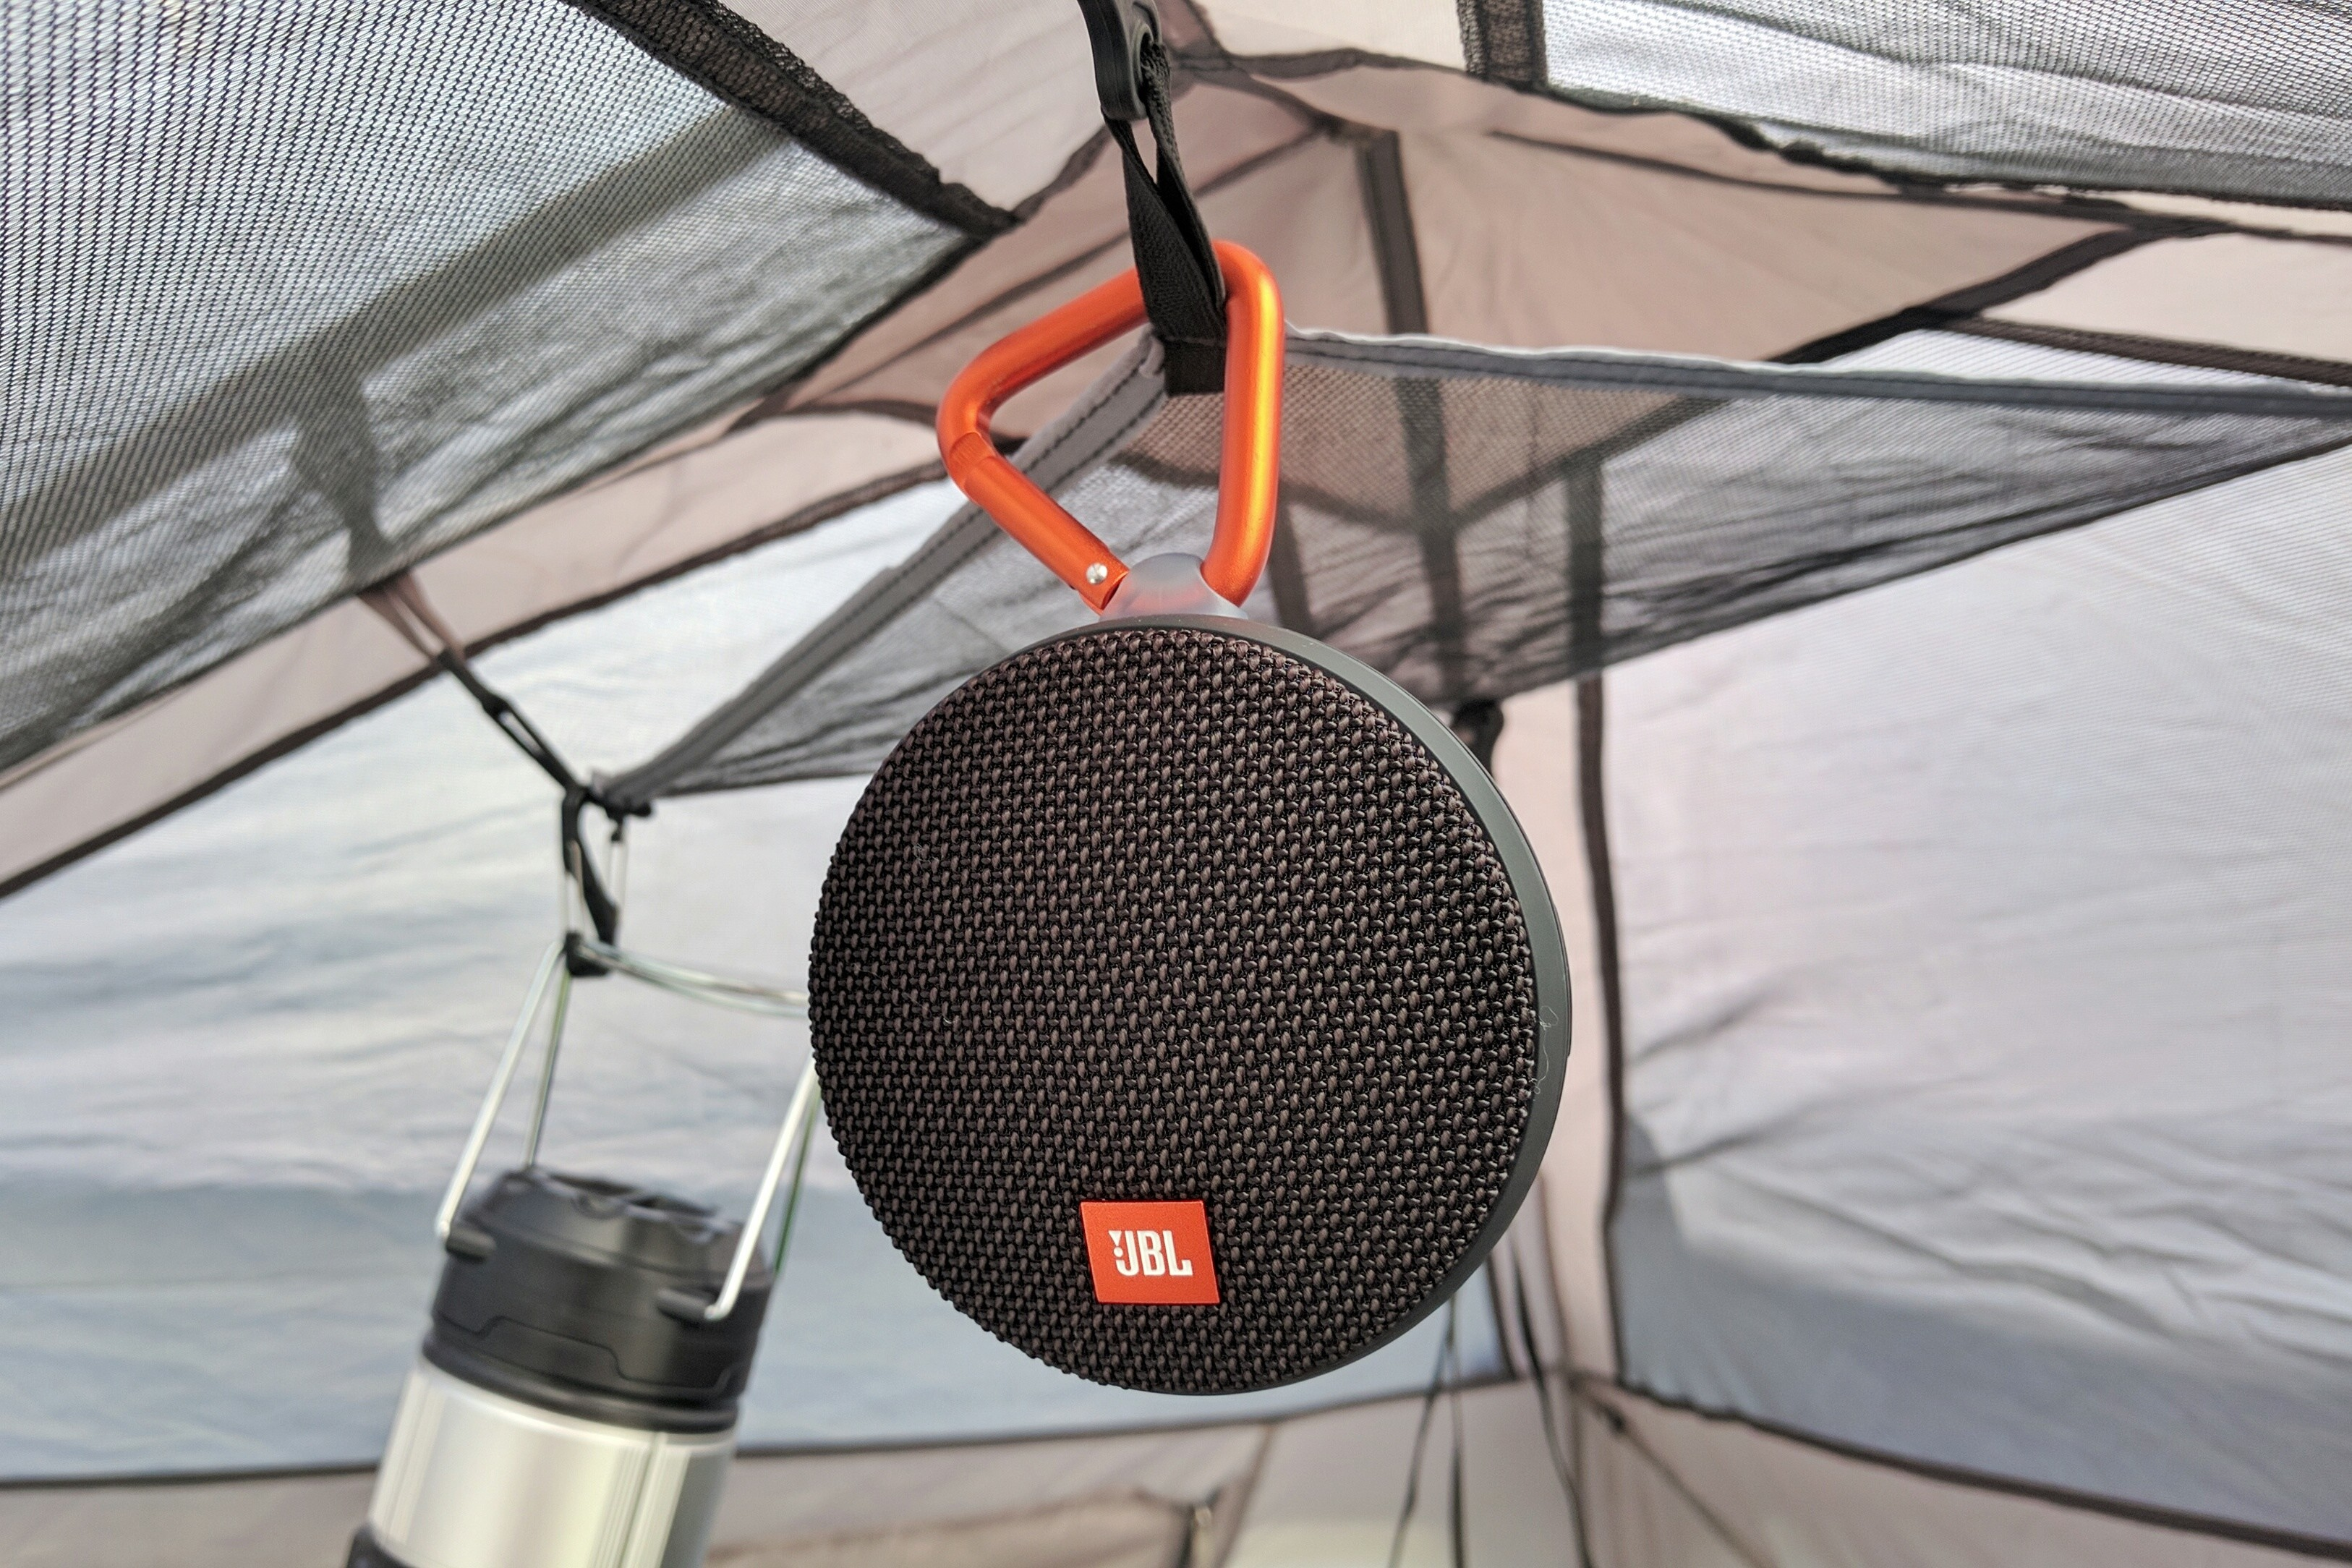 Last week I reviewed the largest portable Bluetooth speaker I've ever seen. This week, the speaker we're looking at slots in at the opposite end of the ...